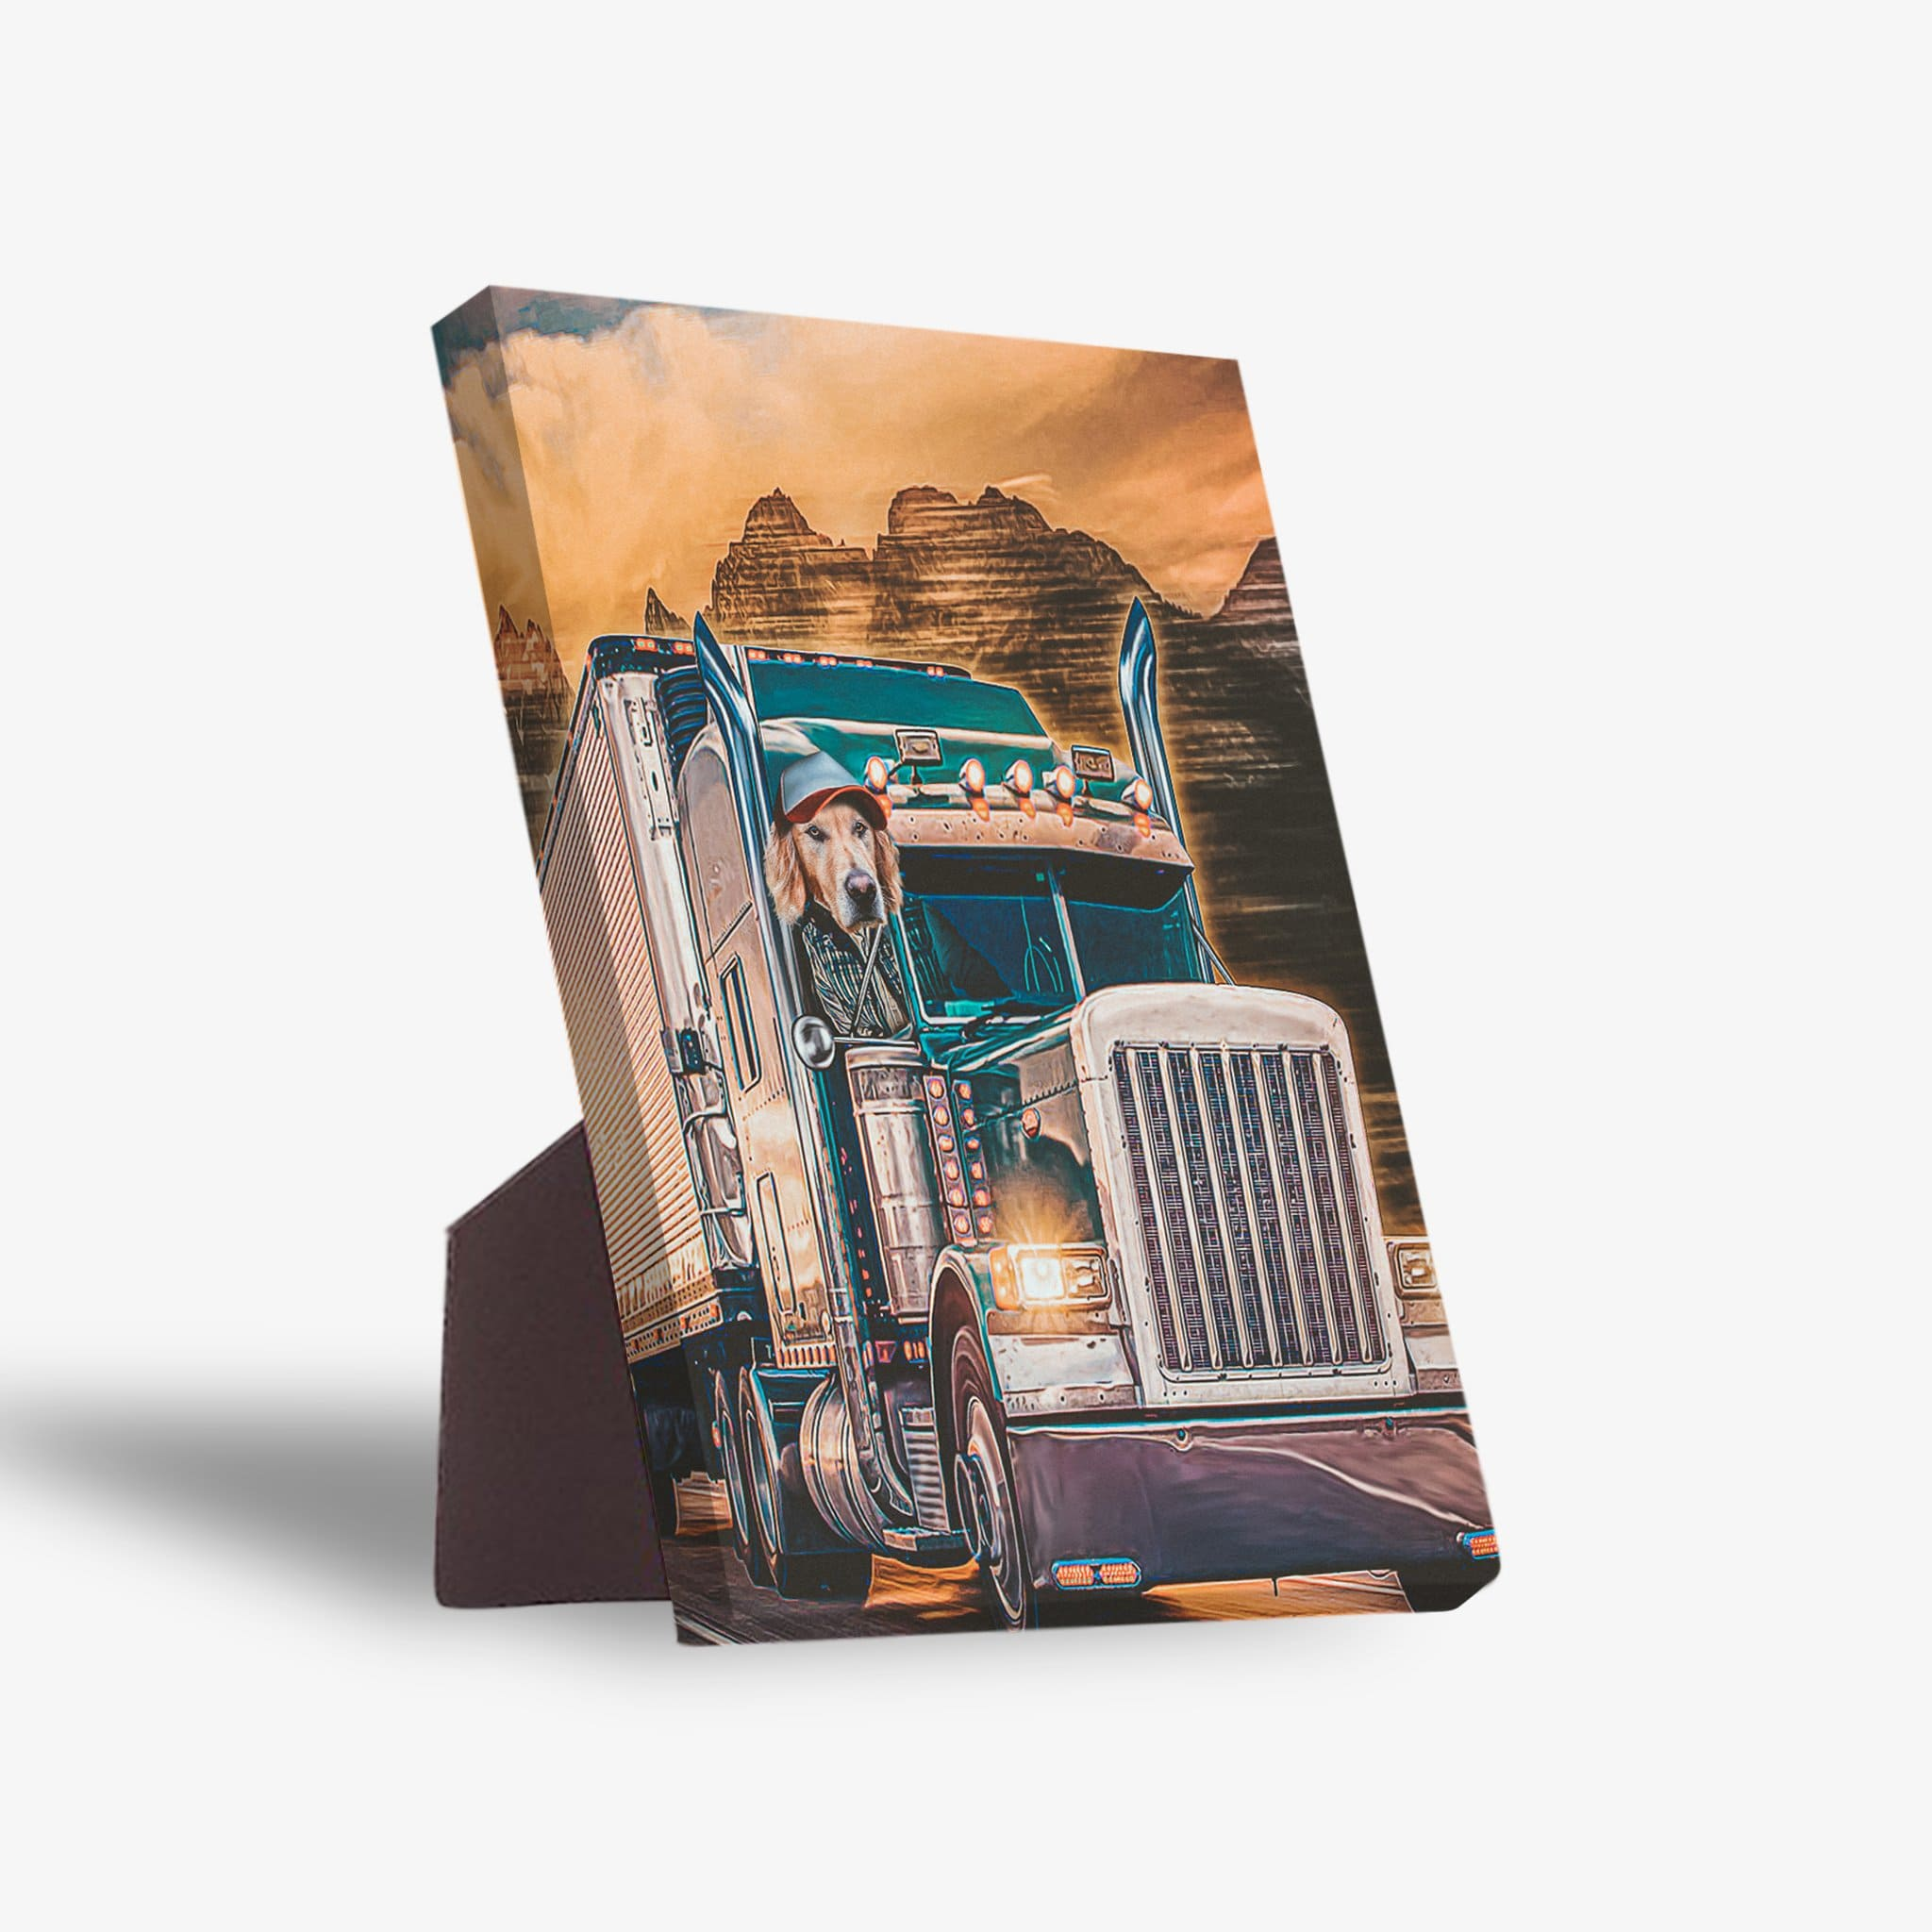 'The Trucker' Personalized Pet Standing Canvas